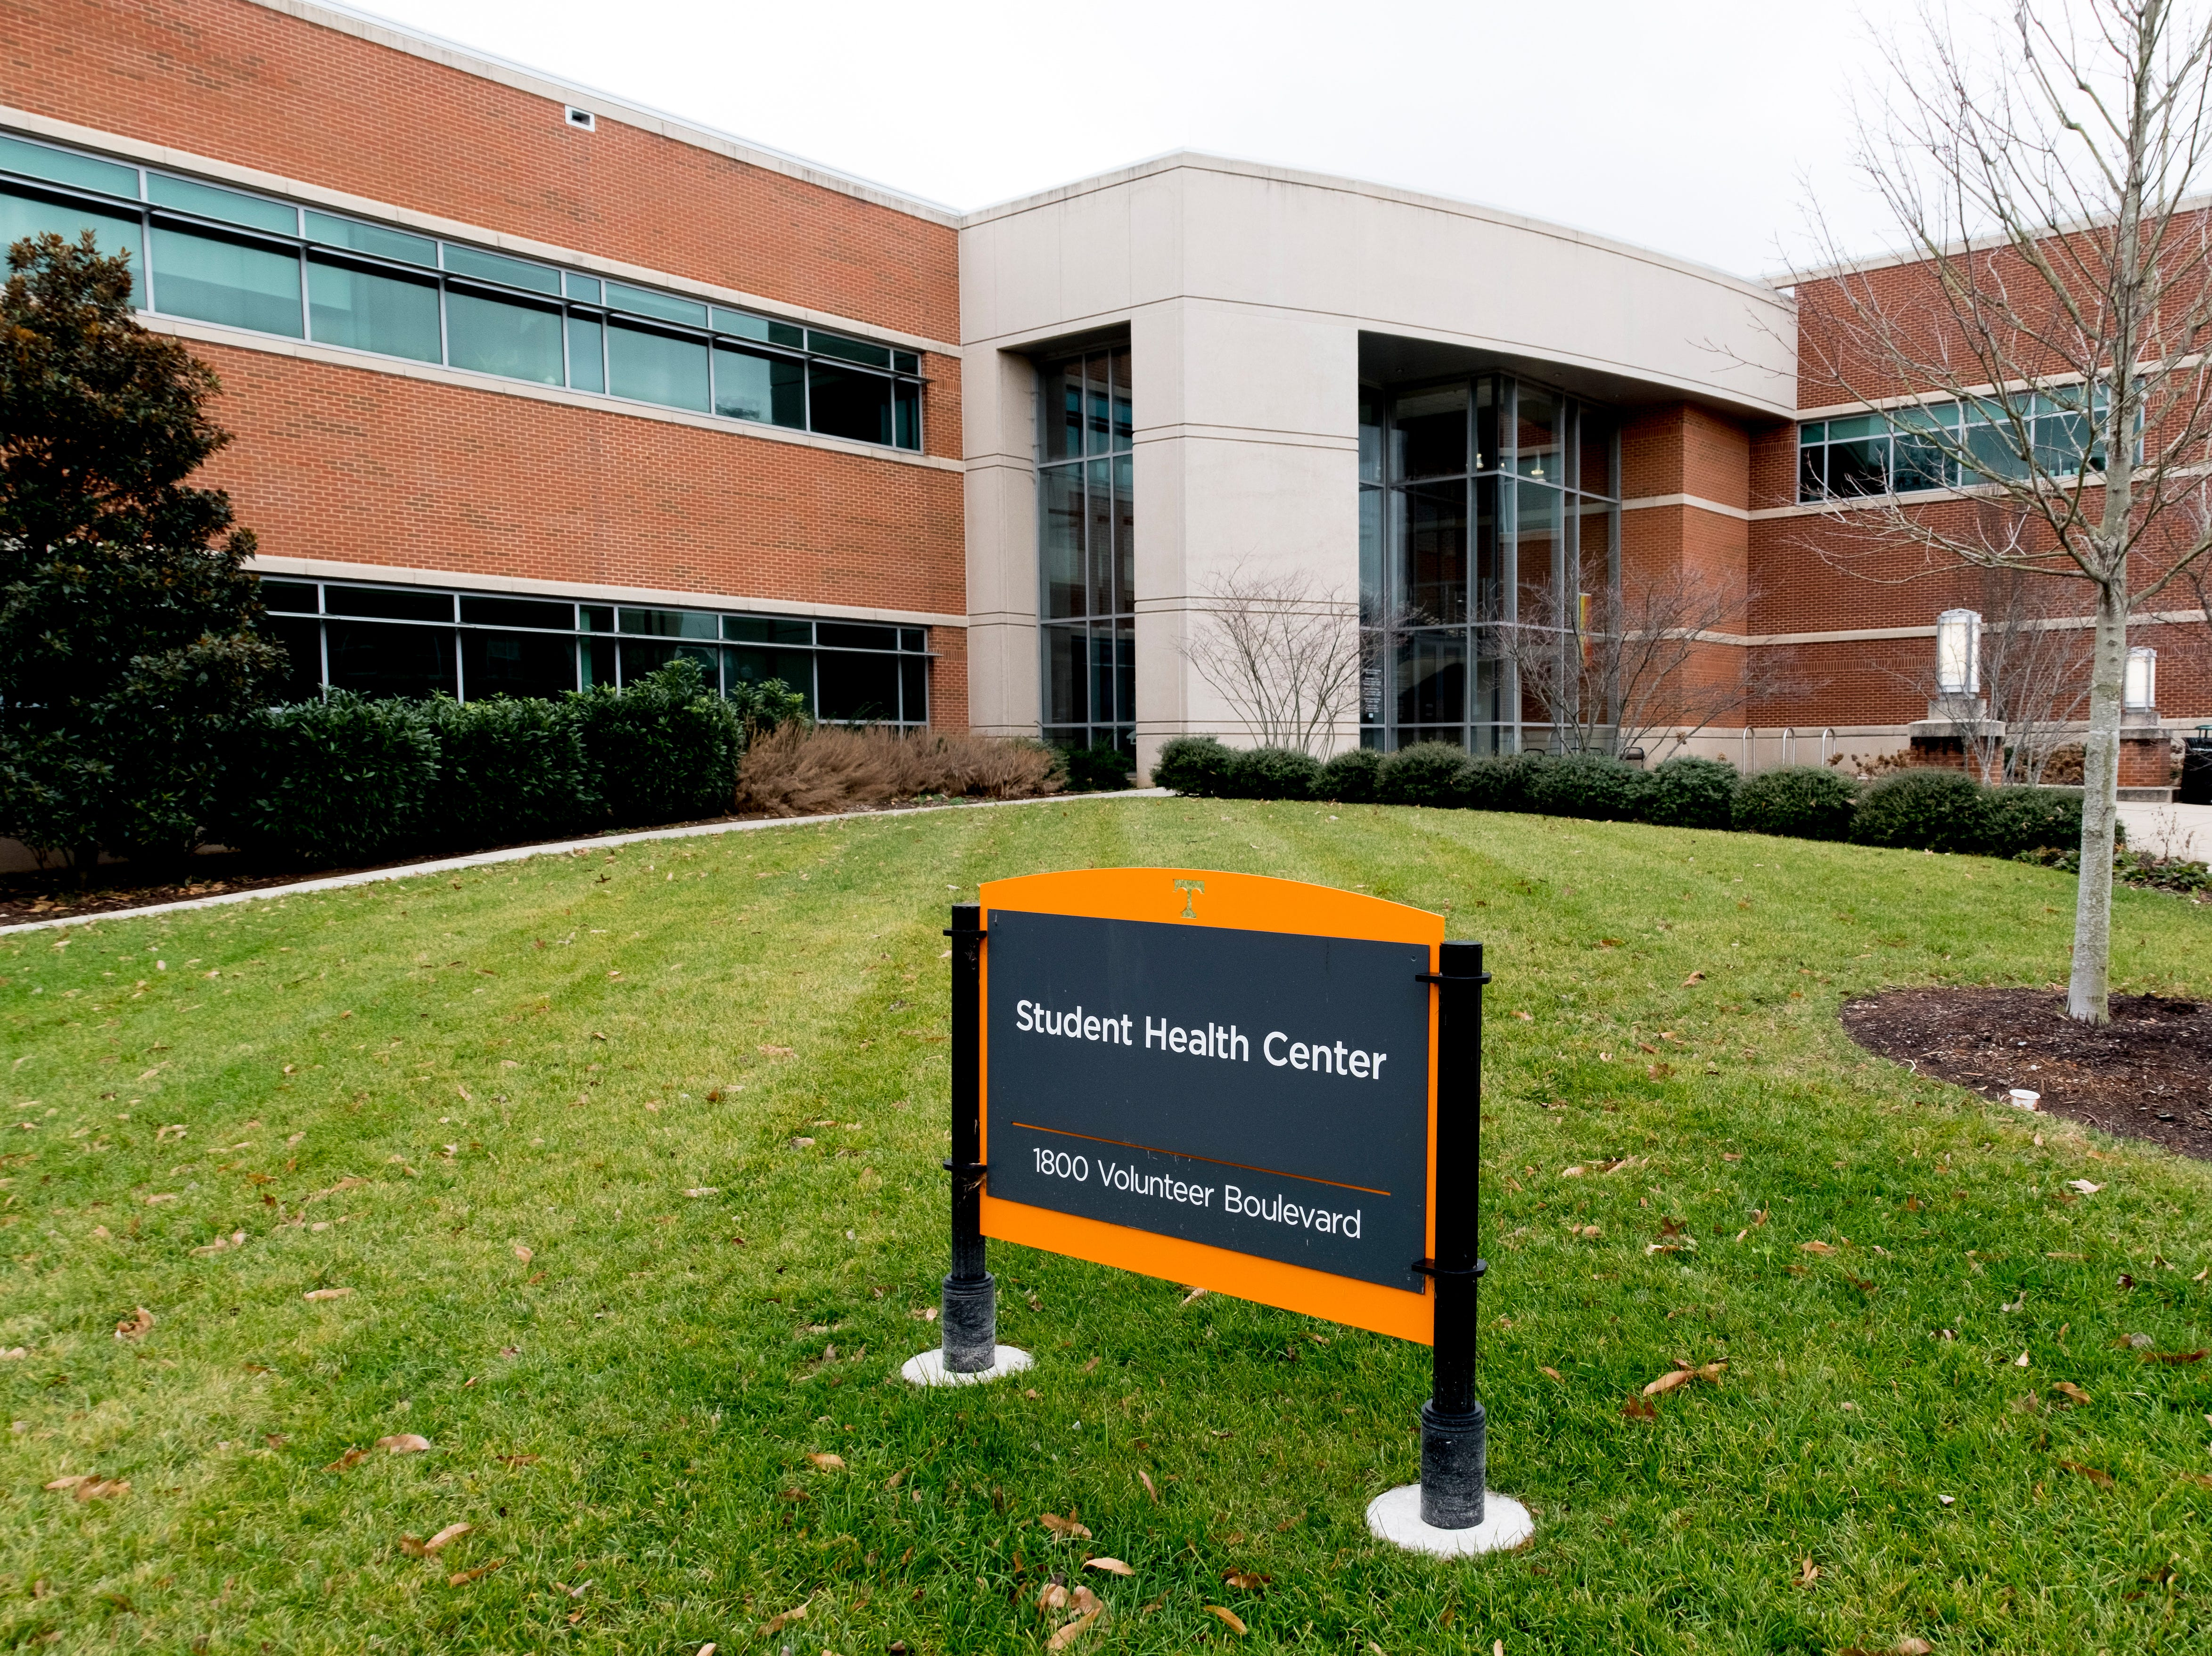 Student Health Center on the University of Tennessee campus in Knoxville, Tennessee on Tuesday, January 1, 2019.